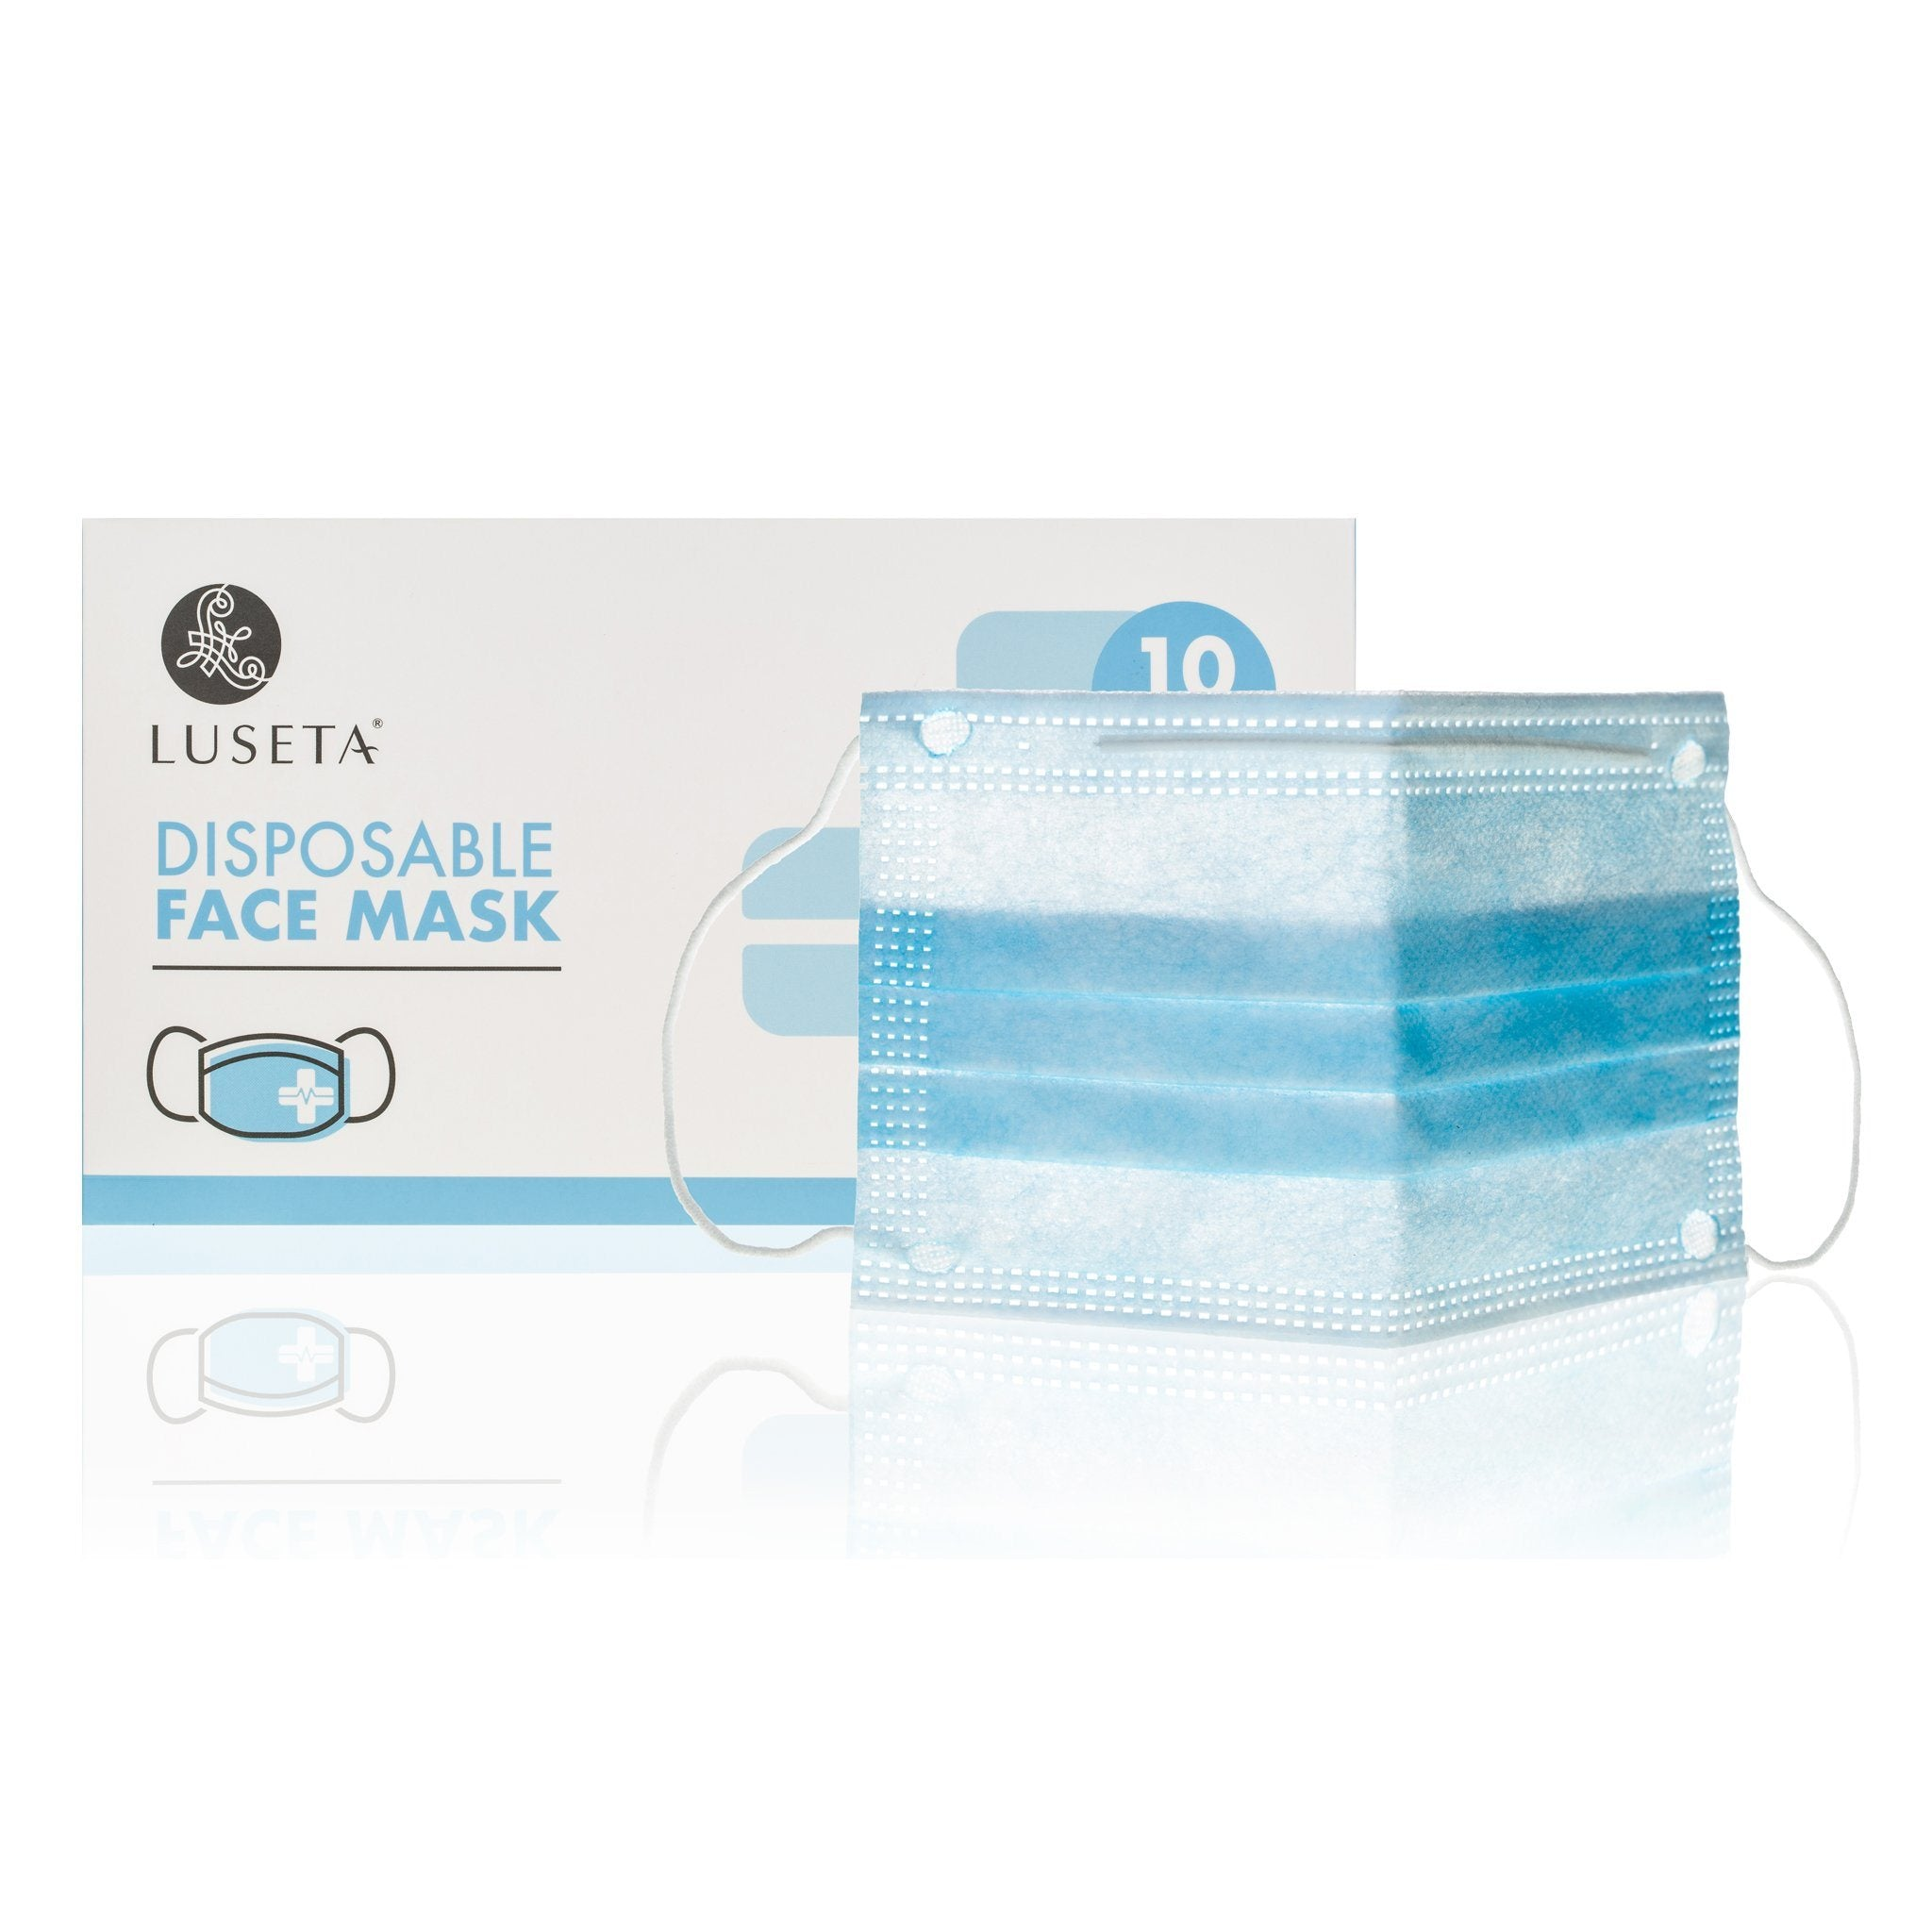 Luseta Disposable Face Mask